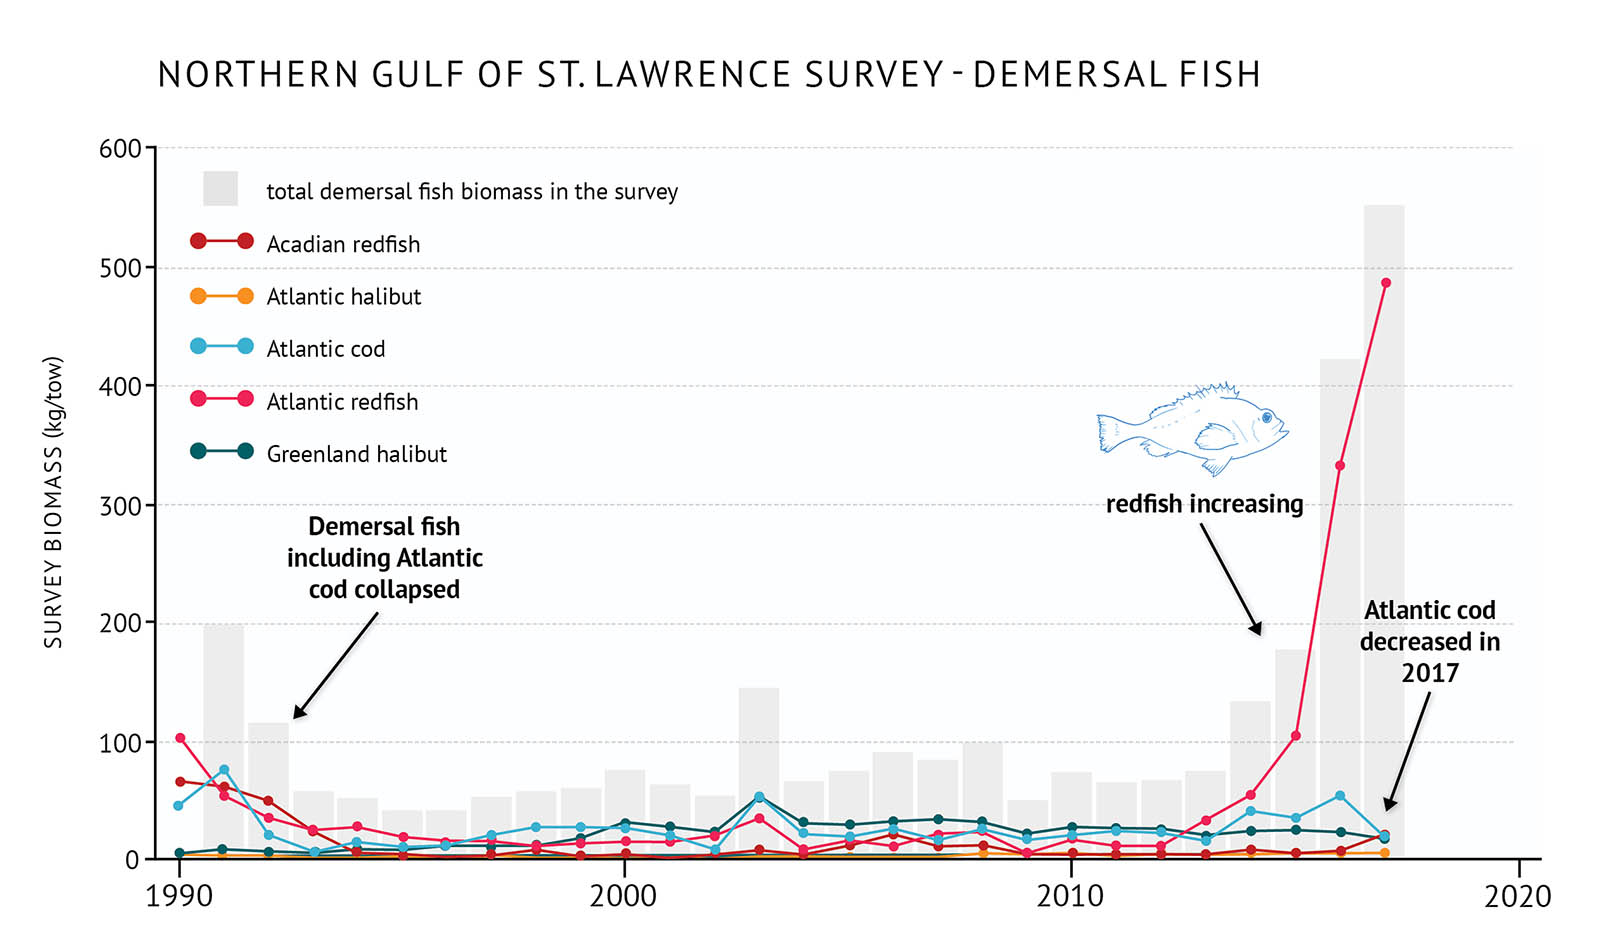 "Figure 21: Survey biomass for total demersal fish and individual species in the northern Gulf of St. Lawrence. A bar and line graph illustrates the survey biomass for total demersal fish as well as individual species in the northern Gulf of St. Lawrence. Text above the graph says ""Northern Gulf of St. Lawrence Survey – Demersal Fish"". The vertical axis on the left shows the survey biomass in units of kilograms per tow from 0 to 600 in increments of 100. The bottom horizontal axis shows the years between 1990 and 2020 in 10 year increments. The biomass for total demersal fish in the survey is represented by grey vertical bars. The survey biomass is approximately 200 kilograms per tow in 1990 and decreases through the early 1990s remaining below 100 kilograms per tow across most of the graph. It begins to rise in the 2010s peaking above 500 kilograms per tow in 2017 which is the last year of data on the graph. Five demersal fish species are represented by different coloured lines on the same graph. A legend appears on the left. A dark red data line shows the survey biomass of Acadian redfish. An orange data line shows the survey biomass of Atlantic halibut. A light blue data line shows the survey biomass of Atlantic cod. A light red data line shows the survey biomass of Atlantic redfish. A dark green data line shows the survey biomass of Greenland halibut. The survey biomasses for individual species all remain at or below 100 kilograms per tow across the graph until the mid-2010s. Acadian redfish, Atlantic redfish, and Atlantic cod generally have the highest survey biomasses, but they each decrease during the early 1990s and then remain low until the 2000s. Atlantic redfish begins to increase rapidly in the 2010s, peaking at approximately 500 kilograms per tow in 2017. Atlantic cod increases slowly in the 2000s but decreases again in 2017. Greenland halibut and Atlantic halibut have lower survey biomasses compared to the other three species. Greenland halibut increases in the 1990s, but declines in the recent years while Atlantic halibut increases after 2010. Above the vertical bars to the left-hand side of the graph, a line of text says ""Demersal fish including Atlantic cod collapsed"". An arrow under the text points down towards 1991. A small, light blue outline drawing of a redfish is placed just above the vertical bars to the right-hand side. Below the drawing there is text which states ""redfish increasing"" and an arrow points downward to the light red line. Another line of text on the far right-hand side of the graph says ""Atlantic cod decreased in 2017"". An arrow points from the text to the light blue line in 2017."